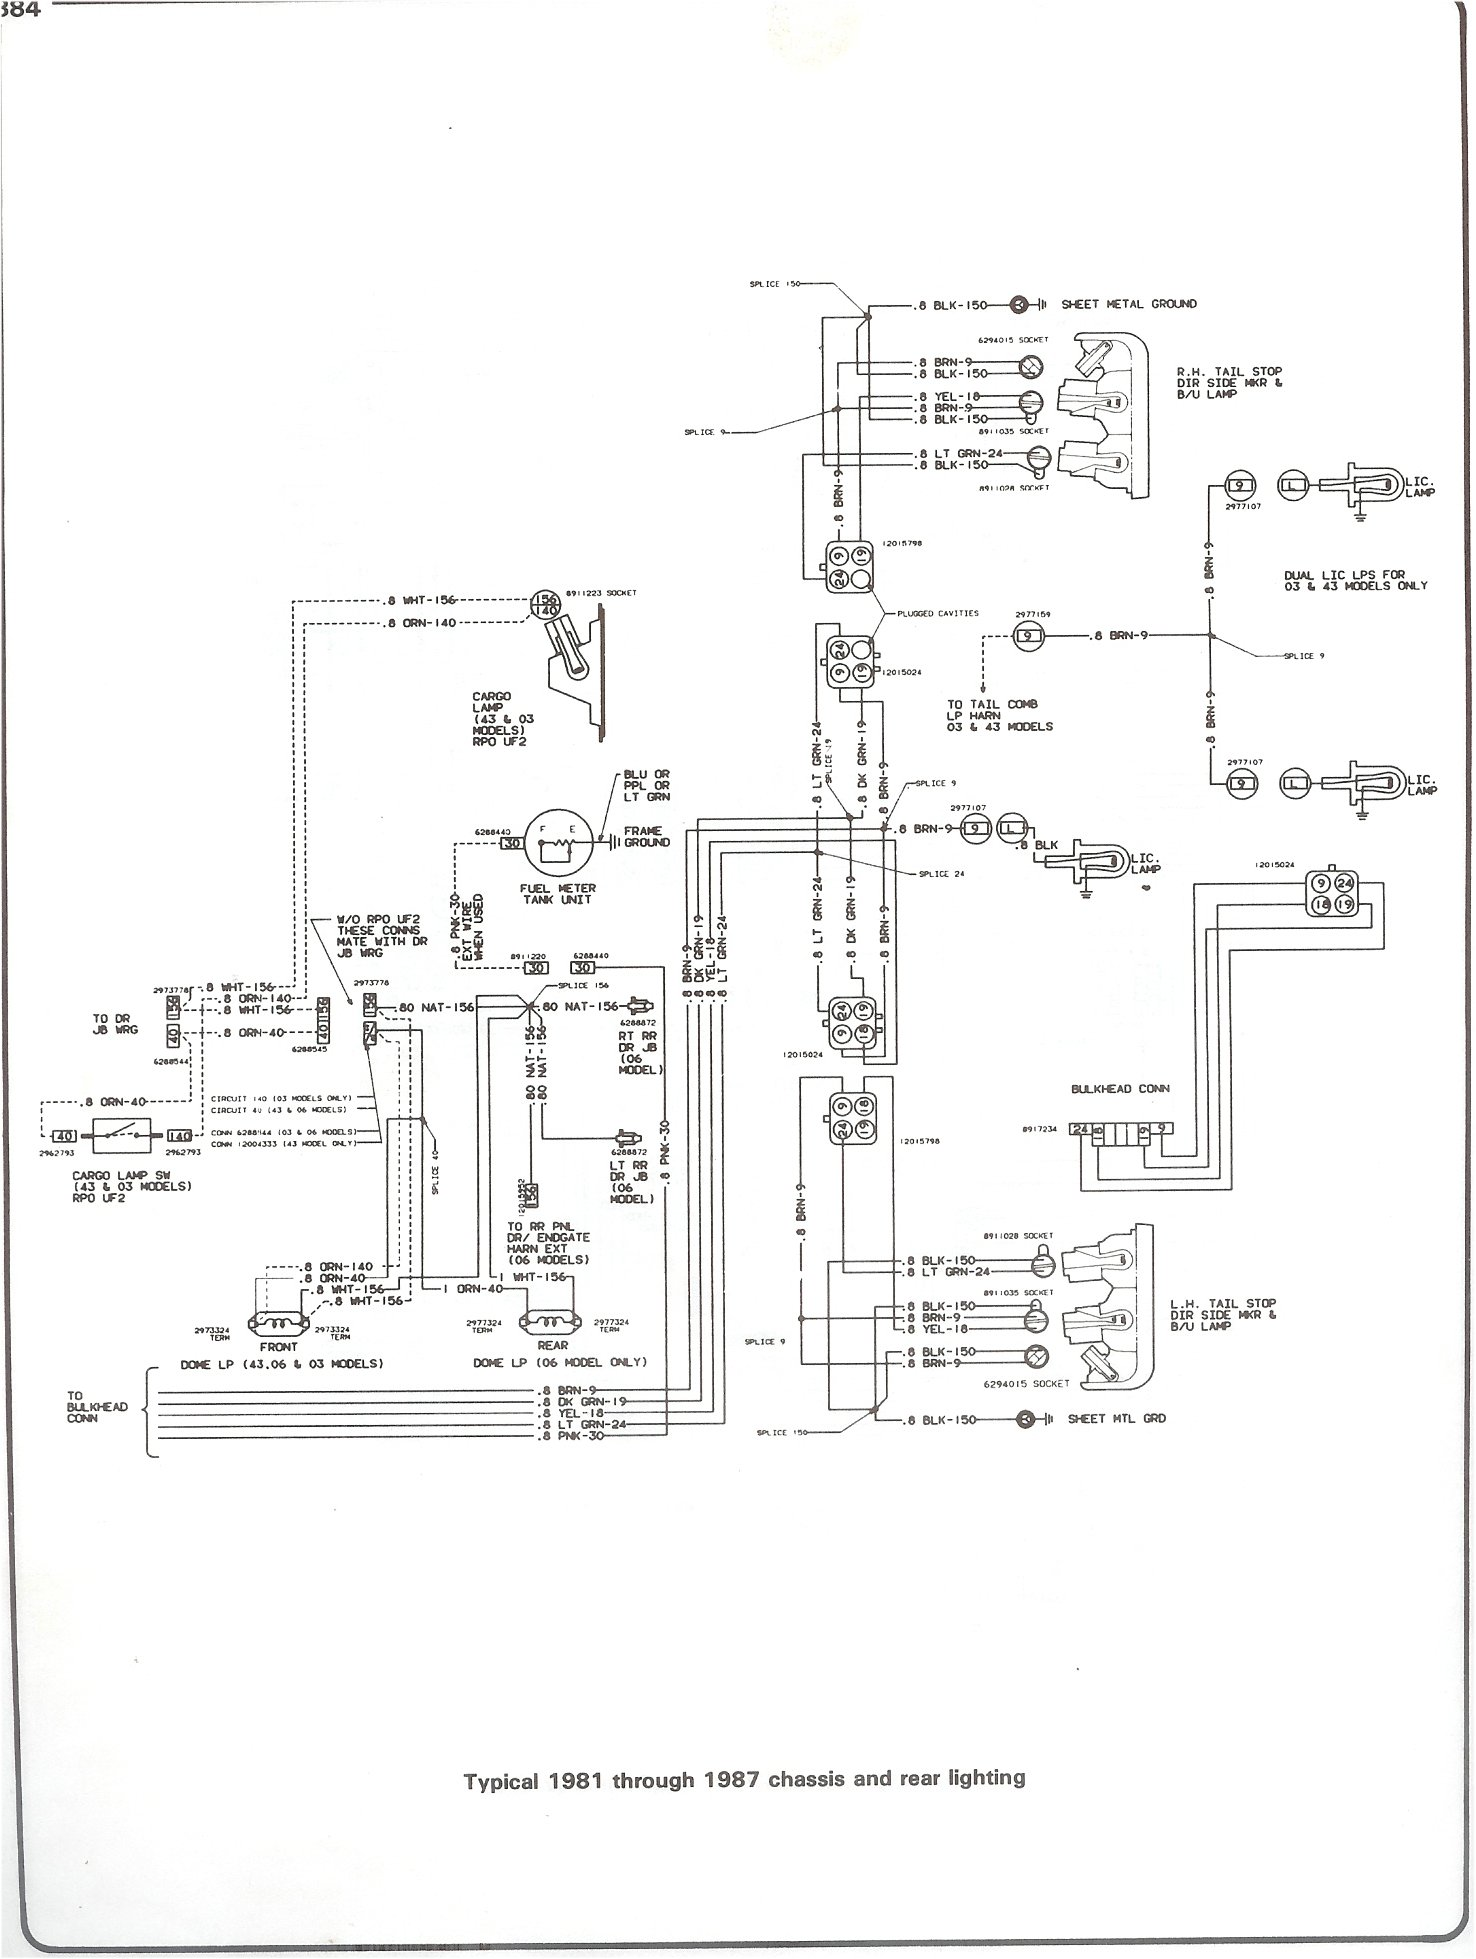 85 chevy silverado wiring diagram w124 e500 1976 c10 database truck headlight great installation of suburban